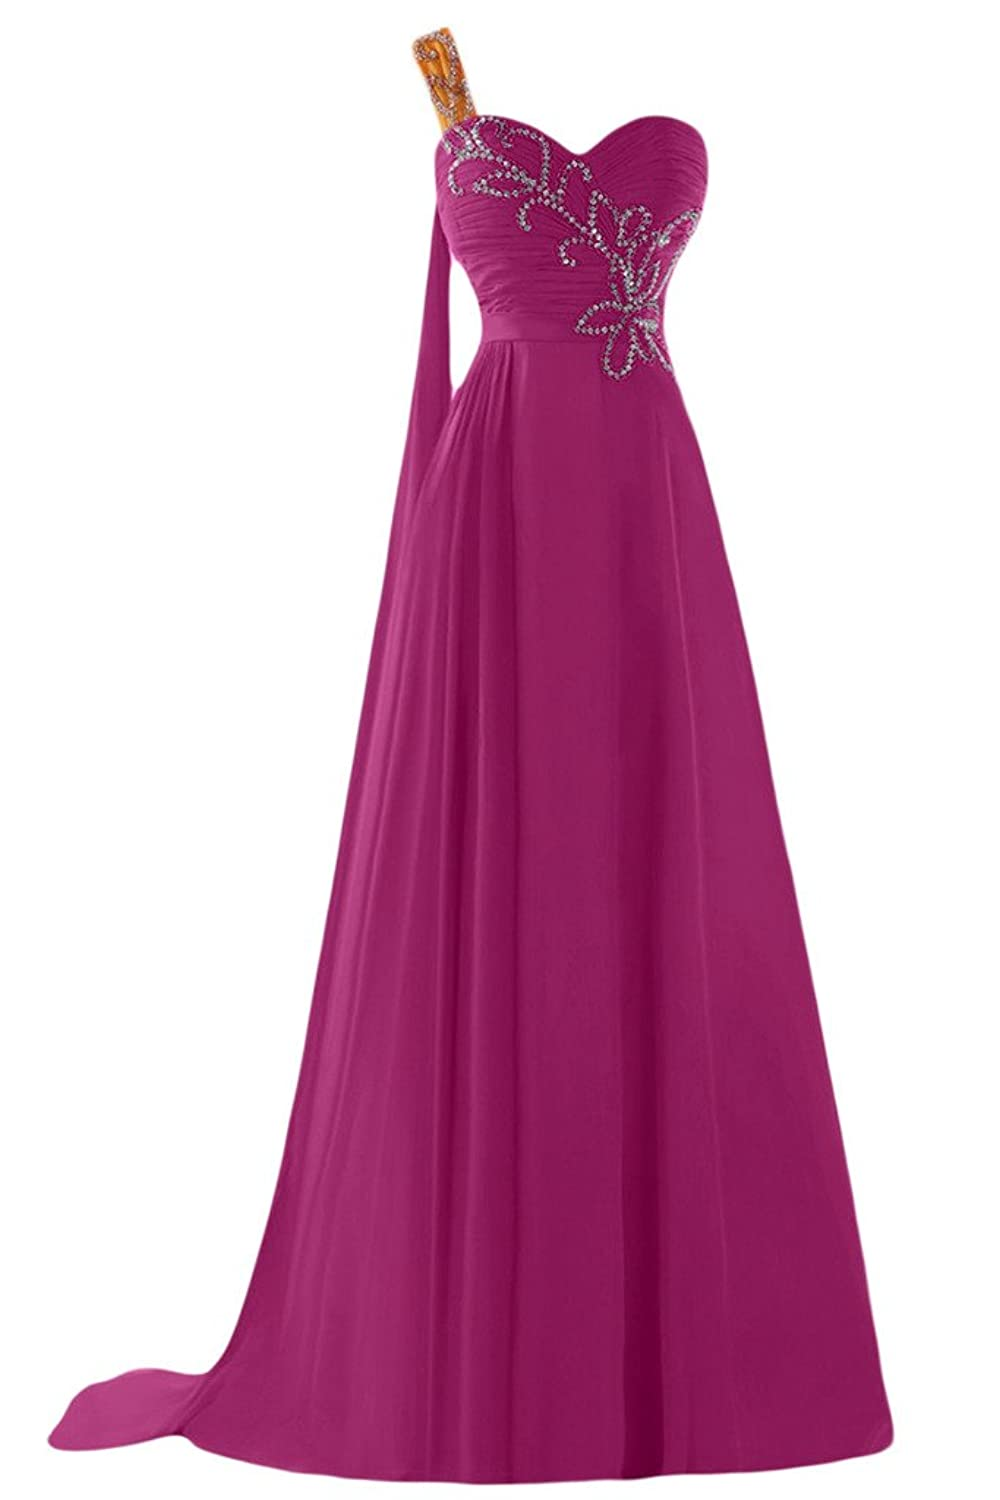 Sunvary A-line One-shoulder Beads Ruches Chiffon Evening Dresses Homecoming Gowns